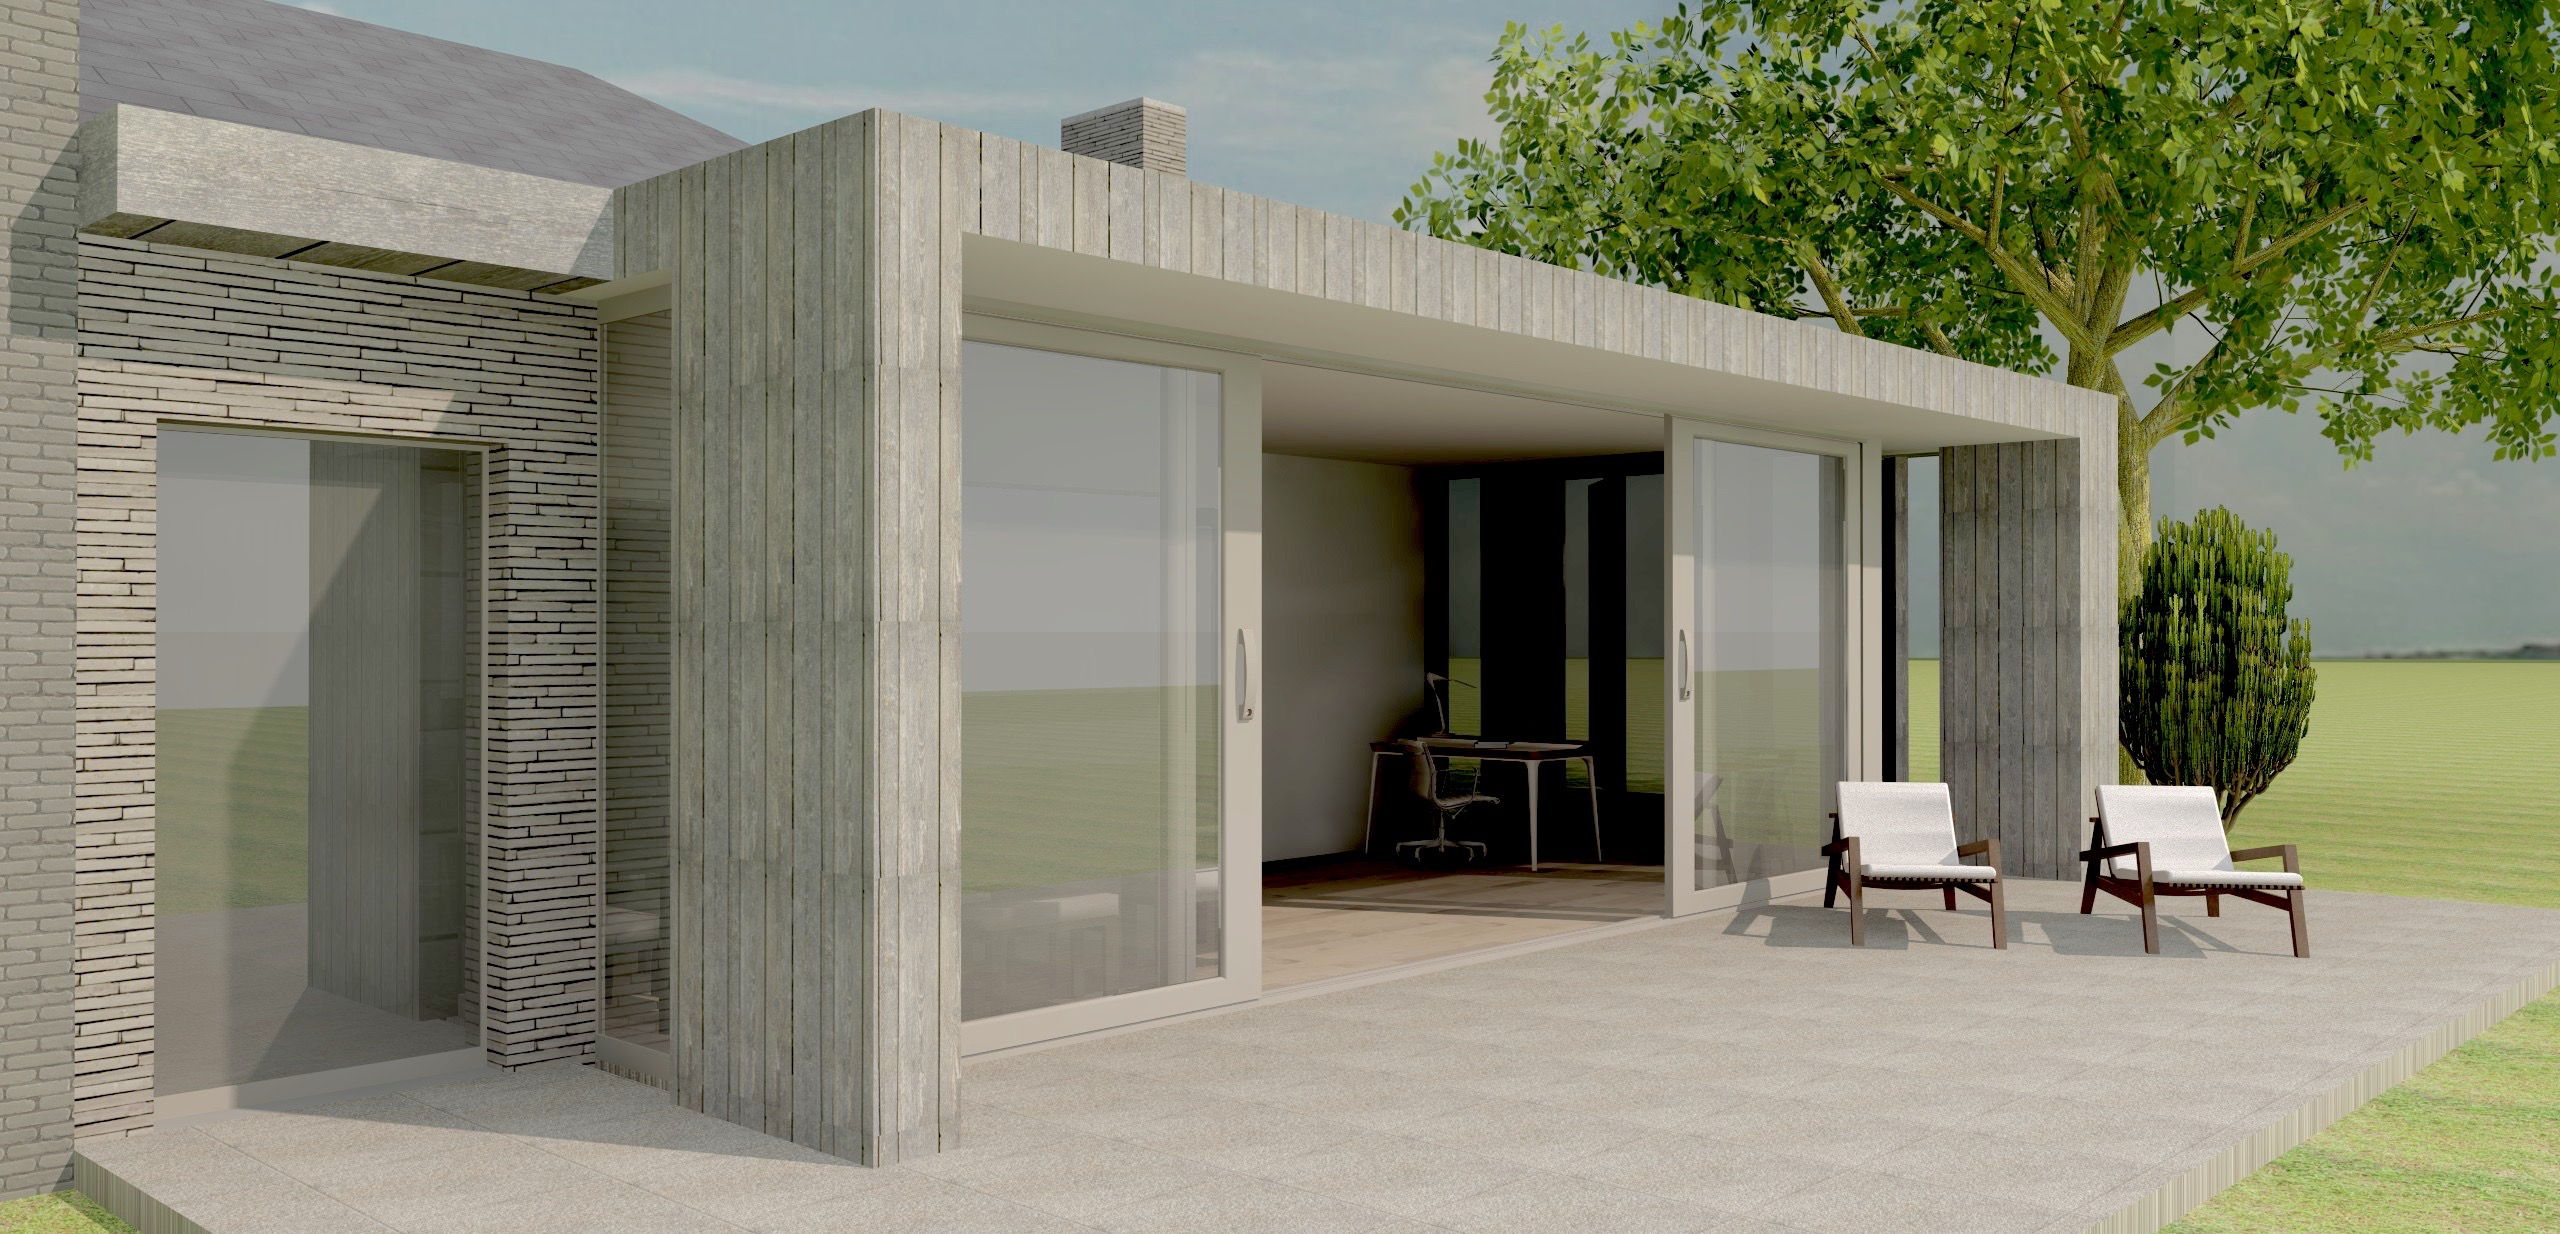 Lovendegem renovatie bungalow- veranda - Archion by Geert Van Rysseghem